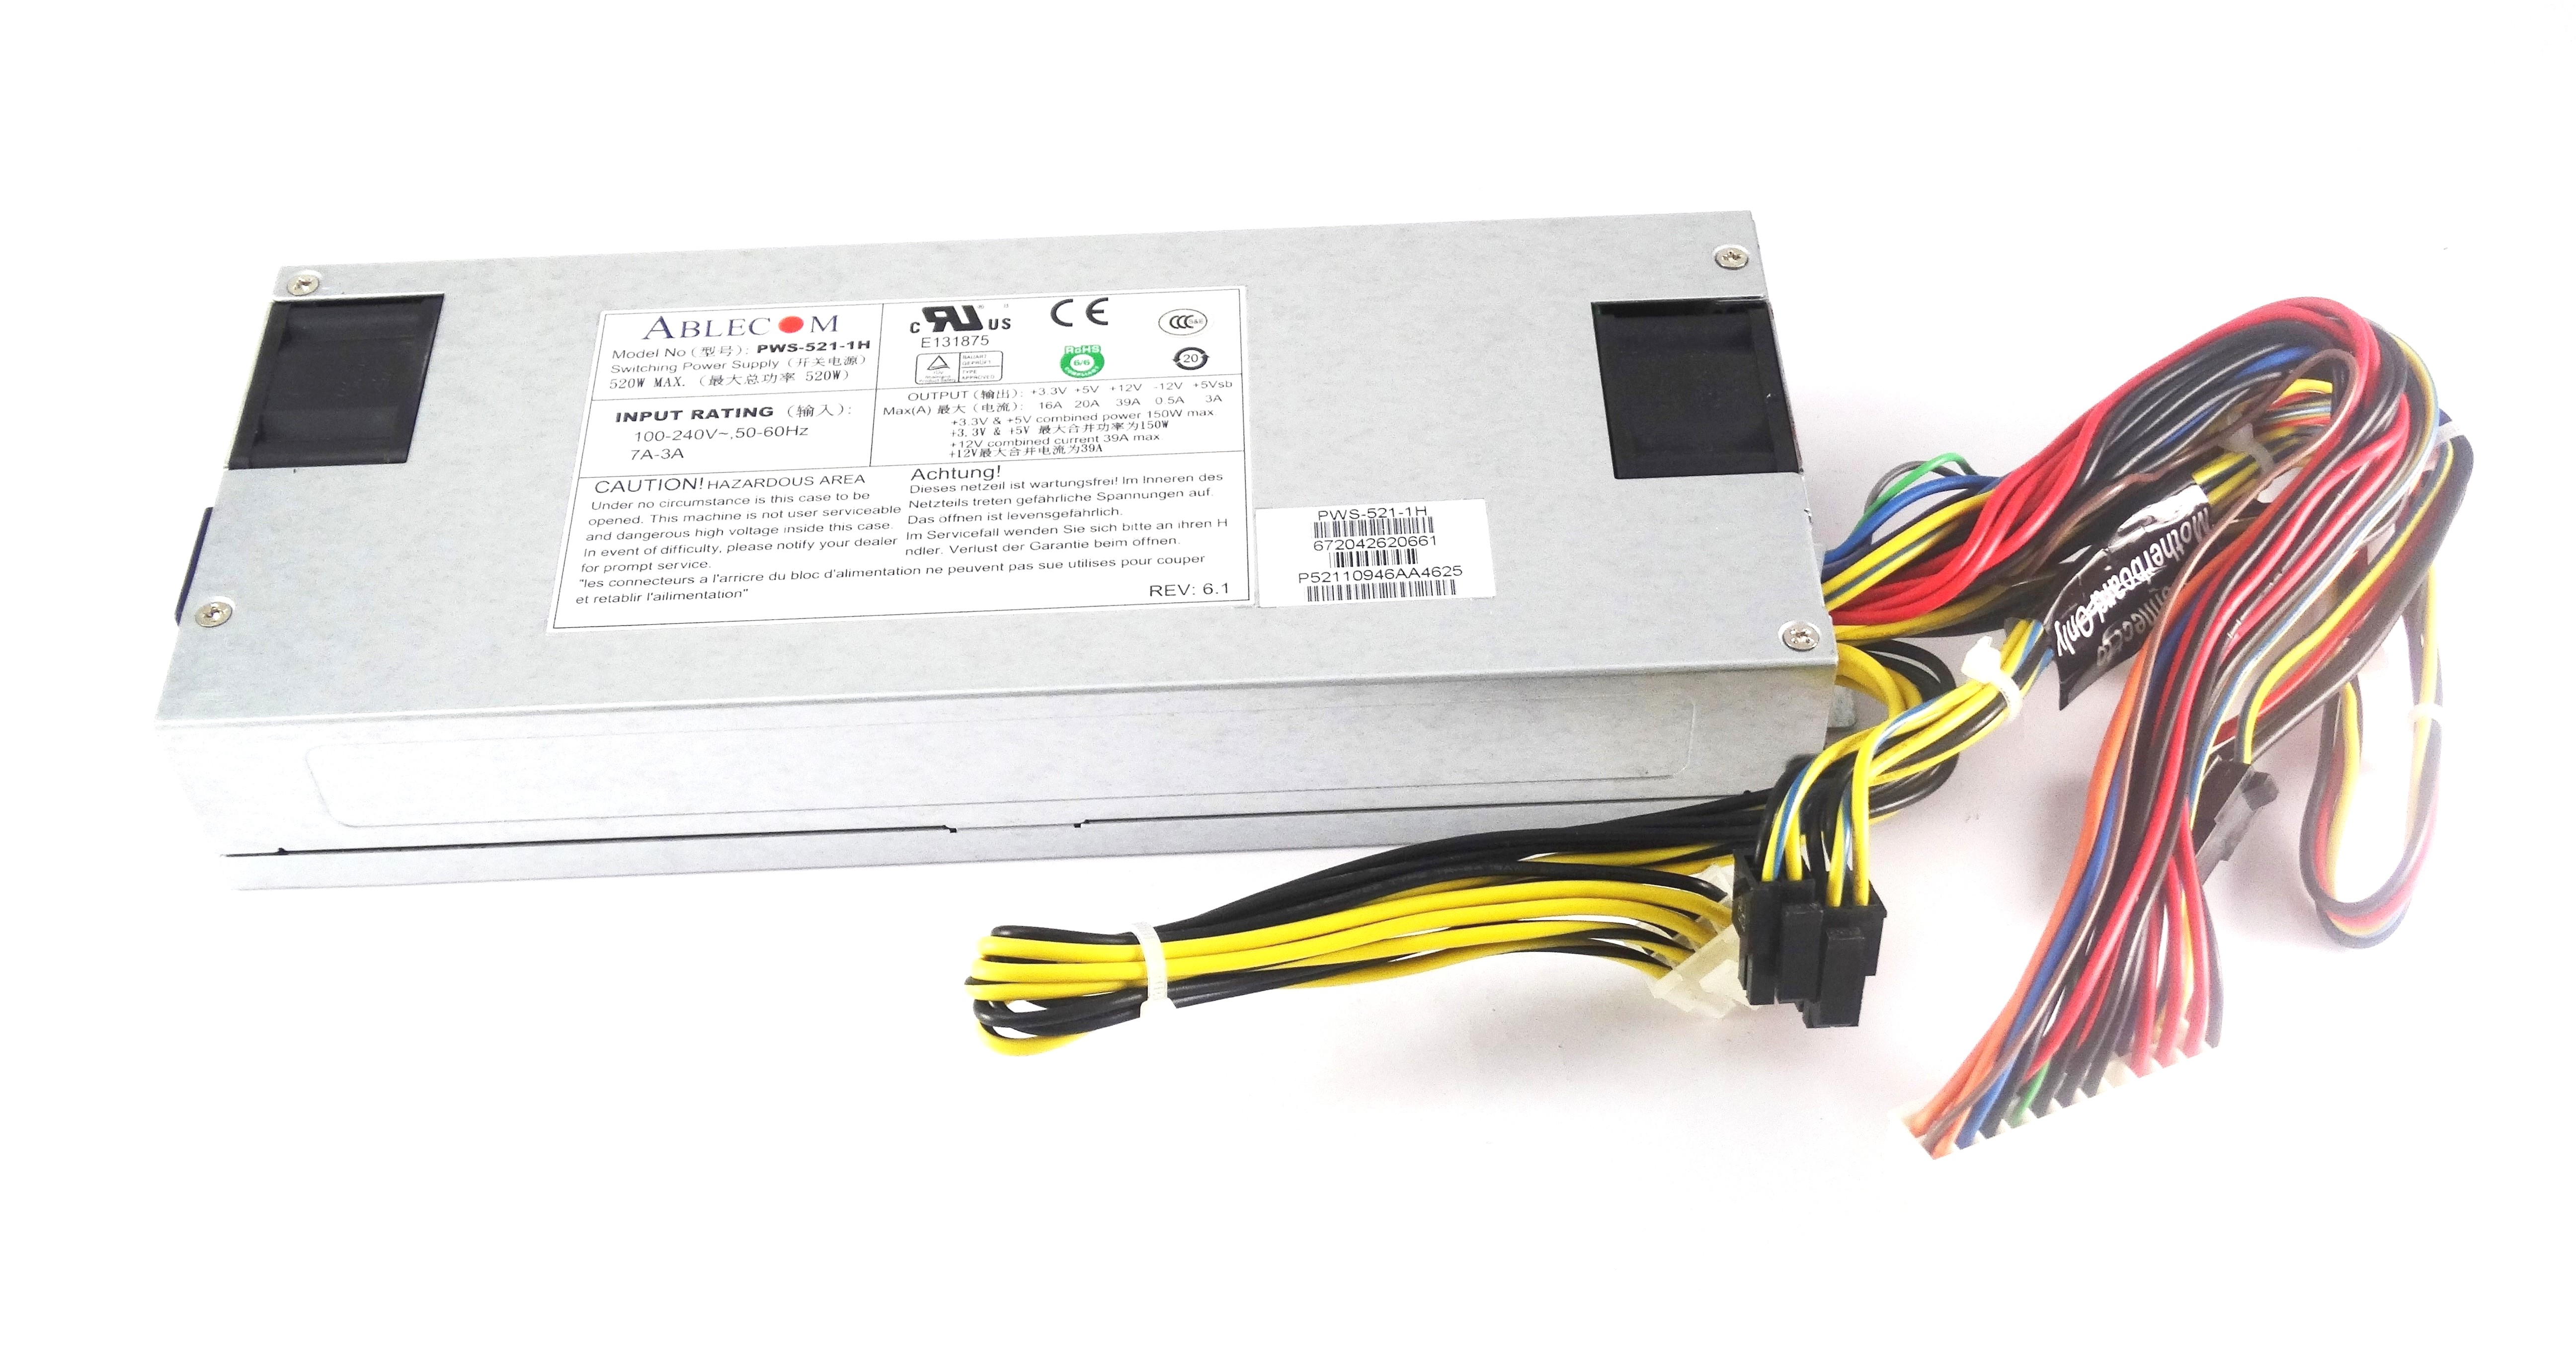 Supermicro Ablecom 520W Switching Power Supply (PWS-521-1H)